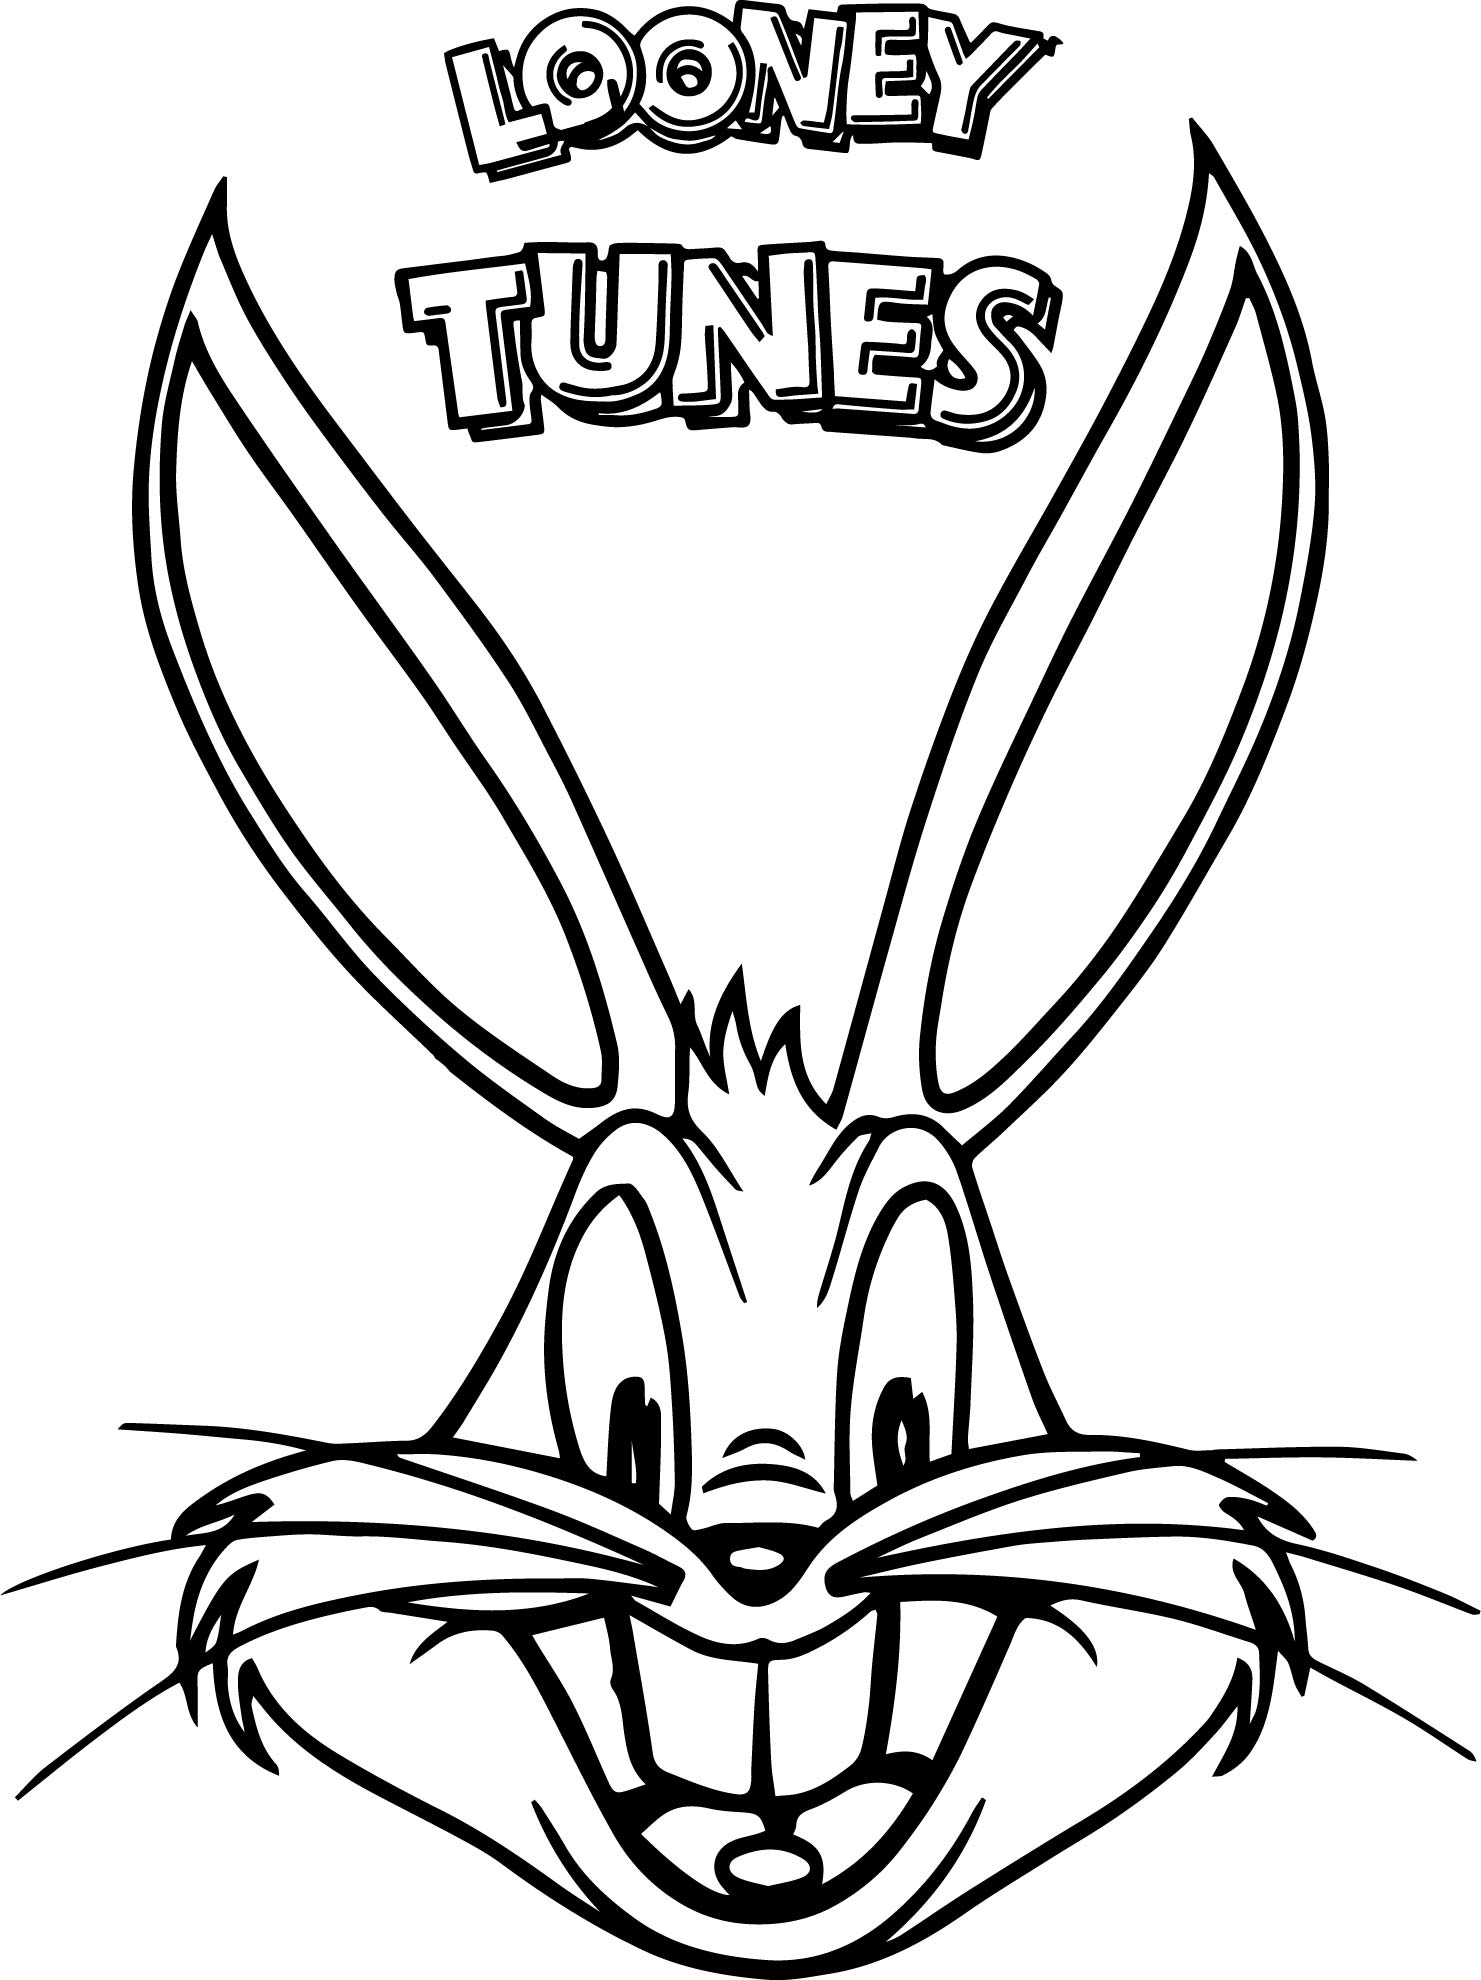 The Looney Tunes Bugs Buny Face Coloring Page ...